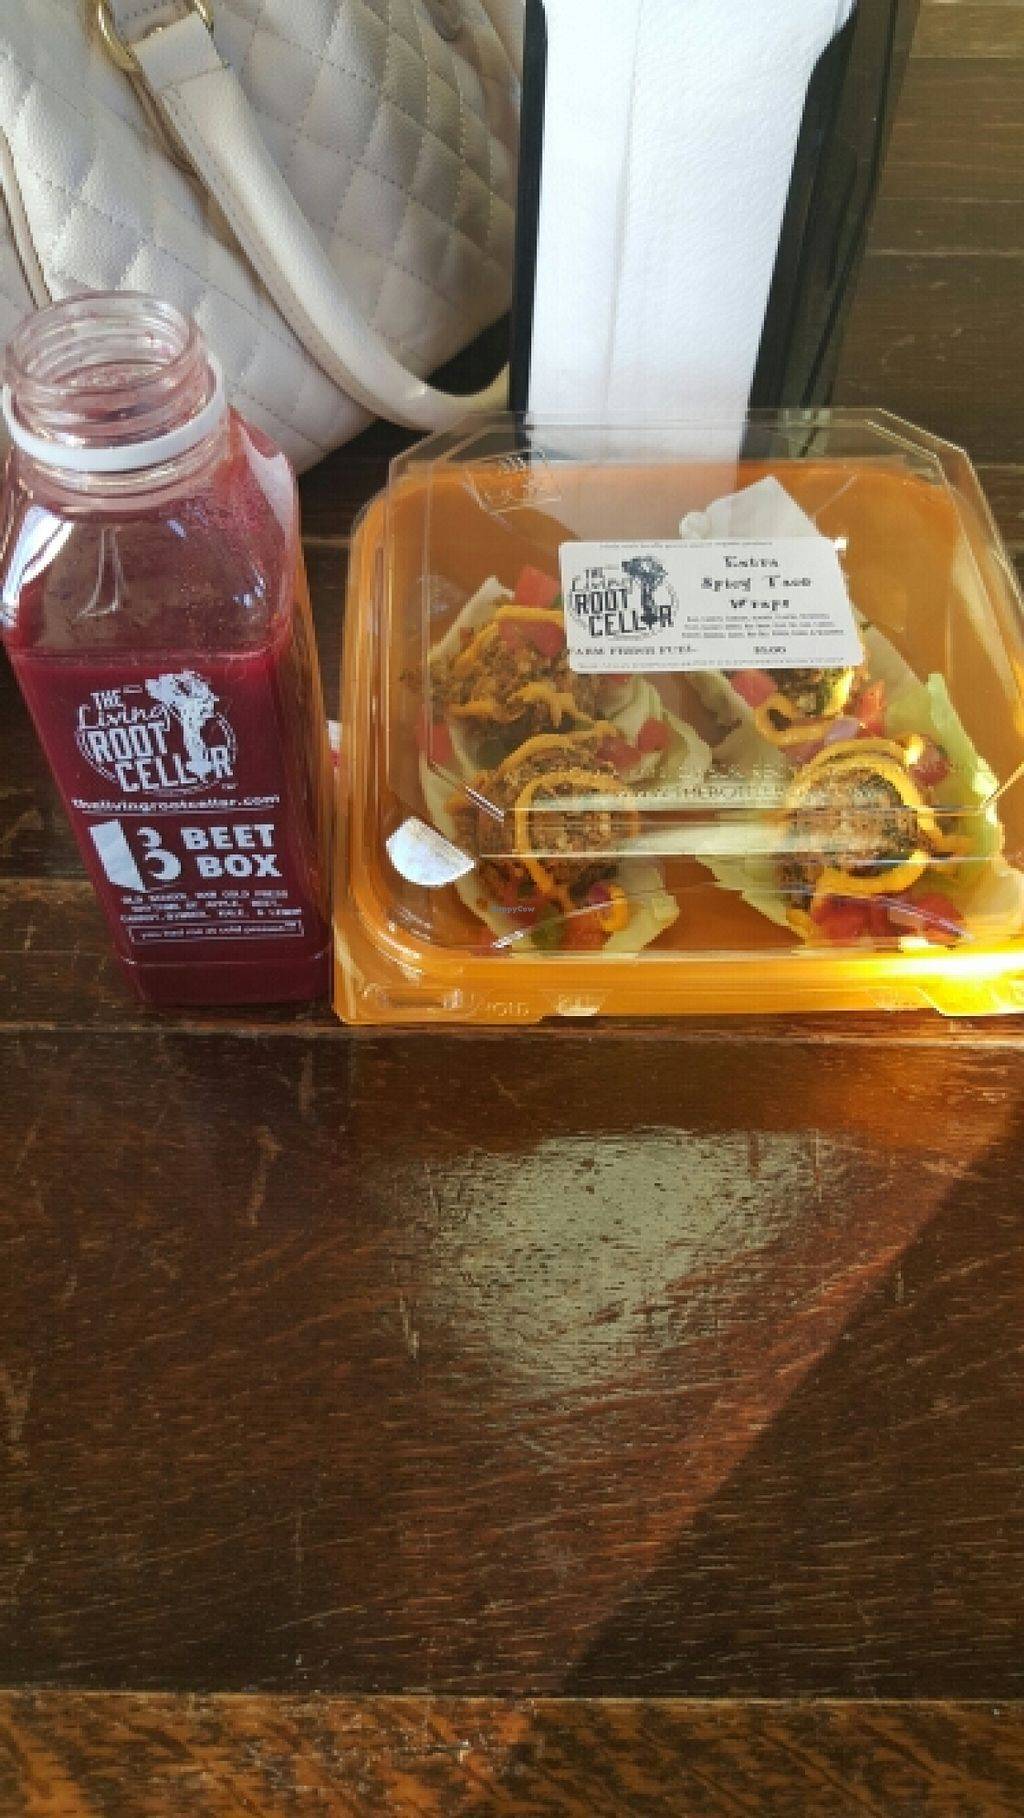 "Photo of CLOSED: The Living Root Cellar  by <a href=""/members/profile/Thevegandoll"">Thevegandoll</a> <br/>beet box juice and spicy tacos :) <br/> October 30, 2015  - <a href='/contact/abuse/image/55173/123270'>Report</a>"